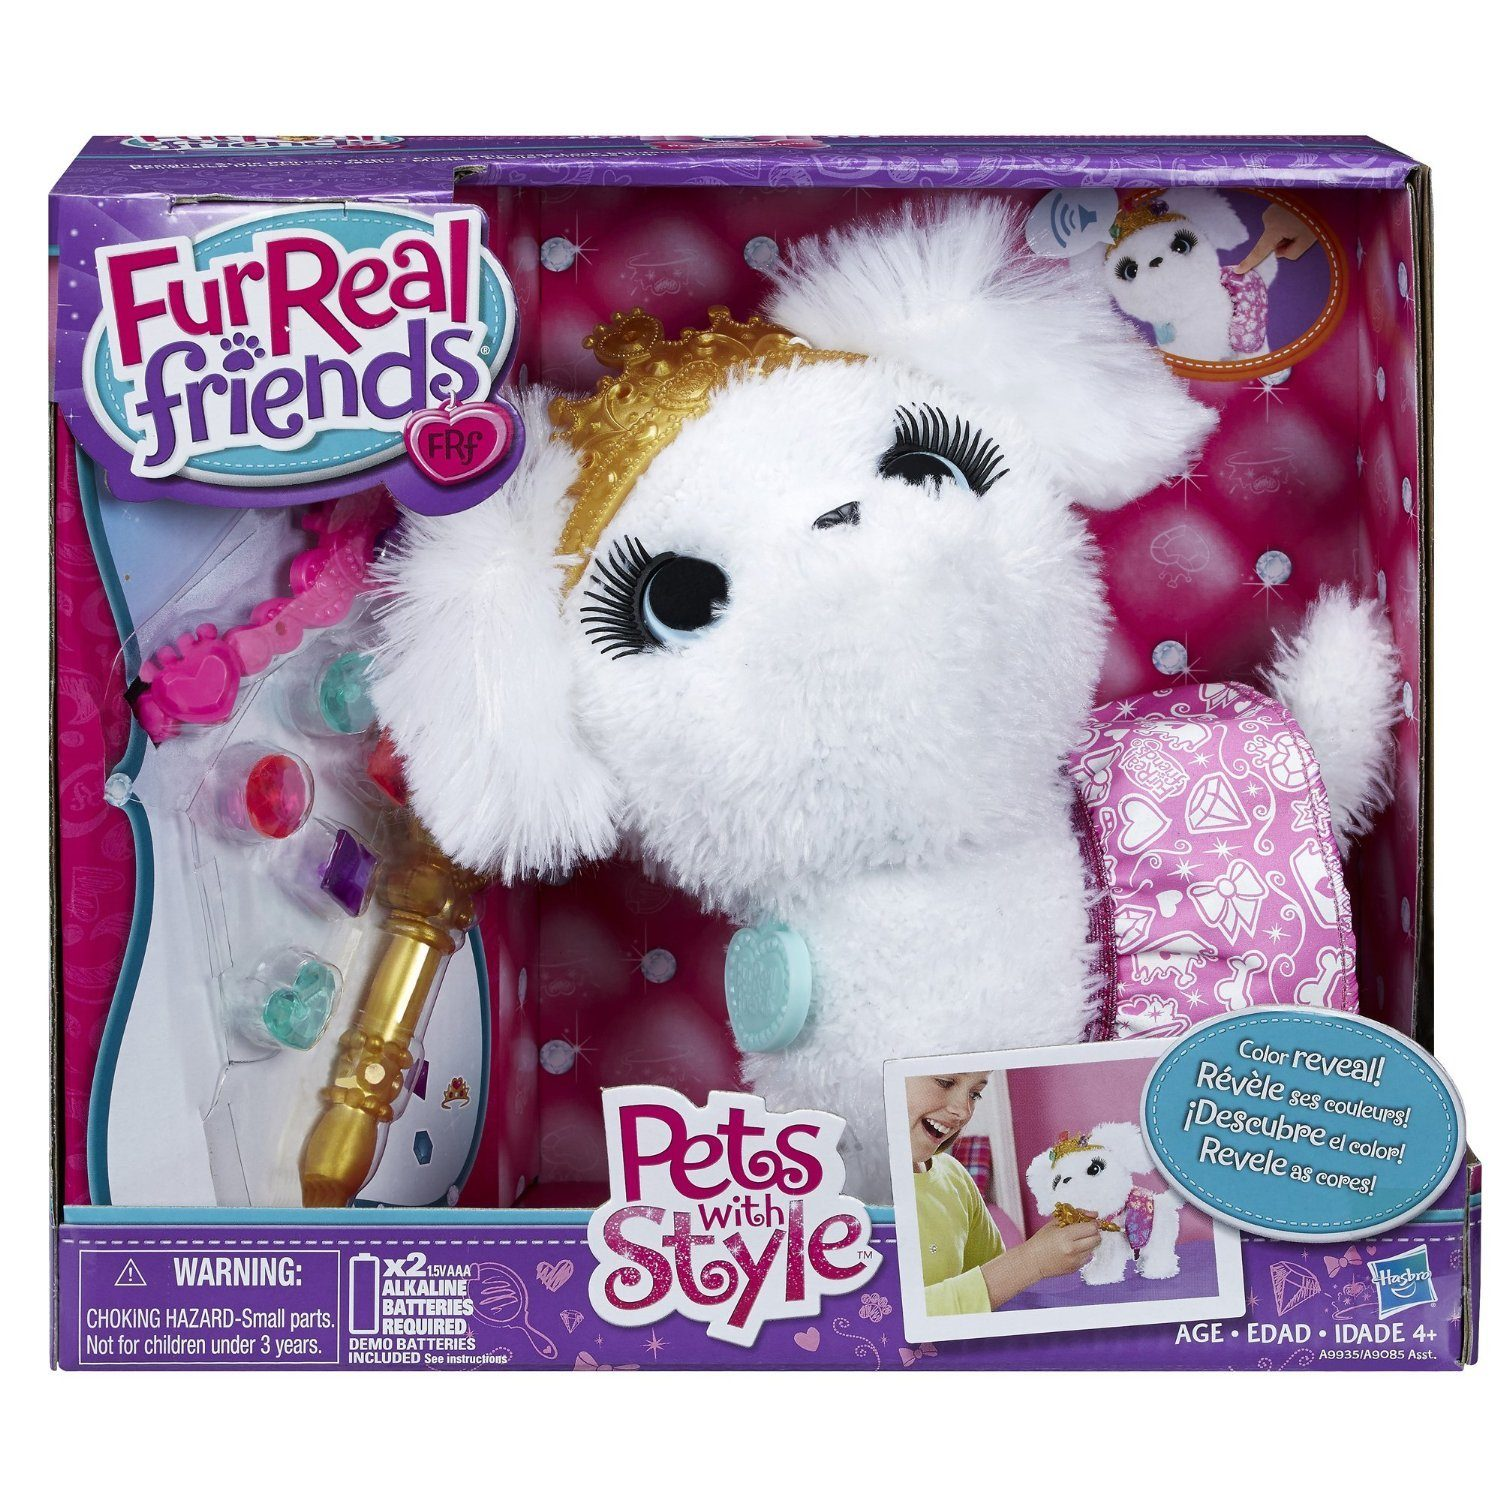 FurReal Friends Pets with Style Design 'n Style Princess Pup Pet Only $7.99 (Reg. $21.99)!